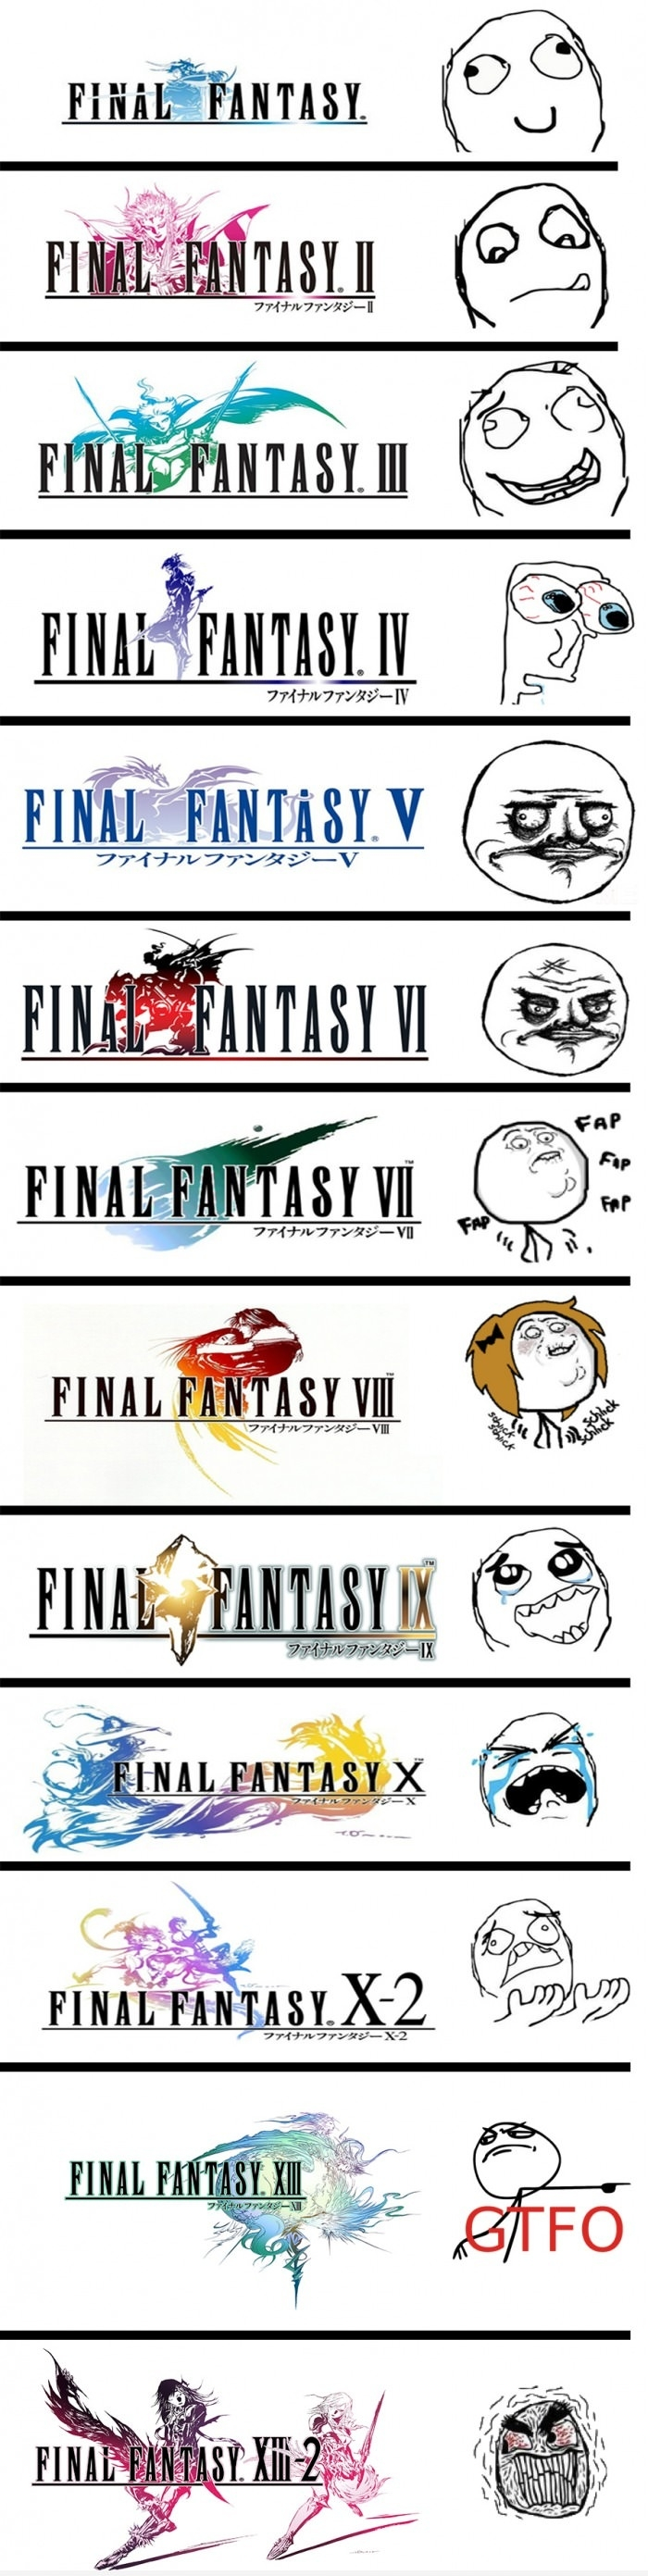 Final Fantasy Reactions